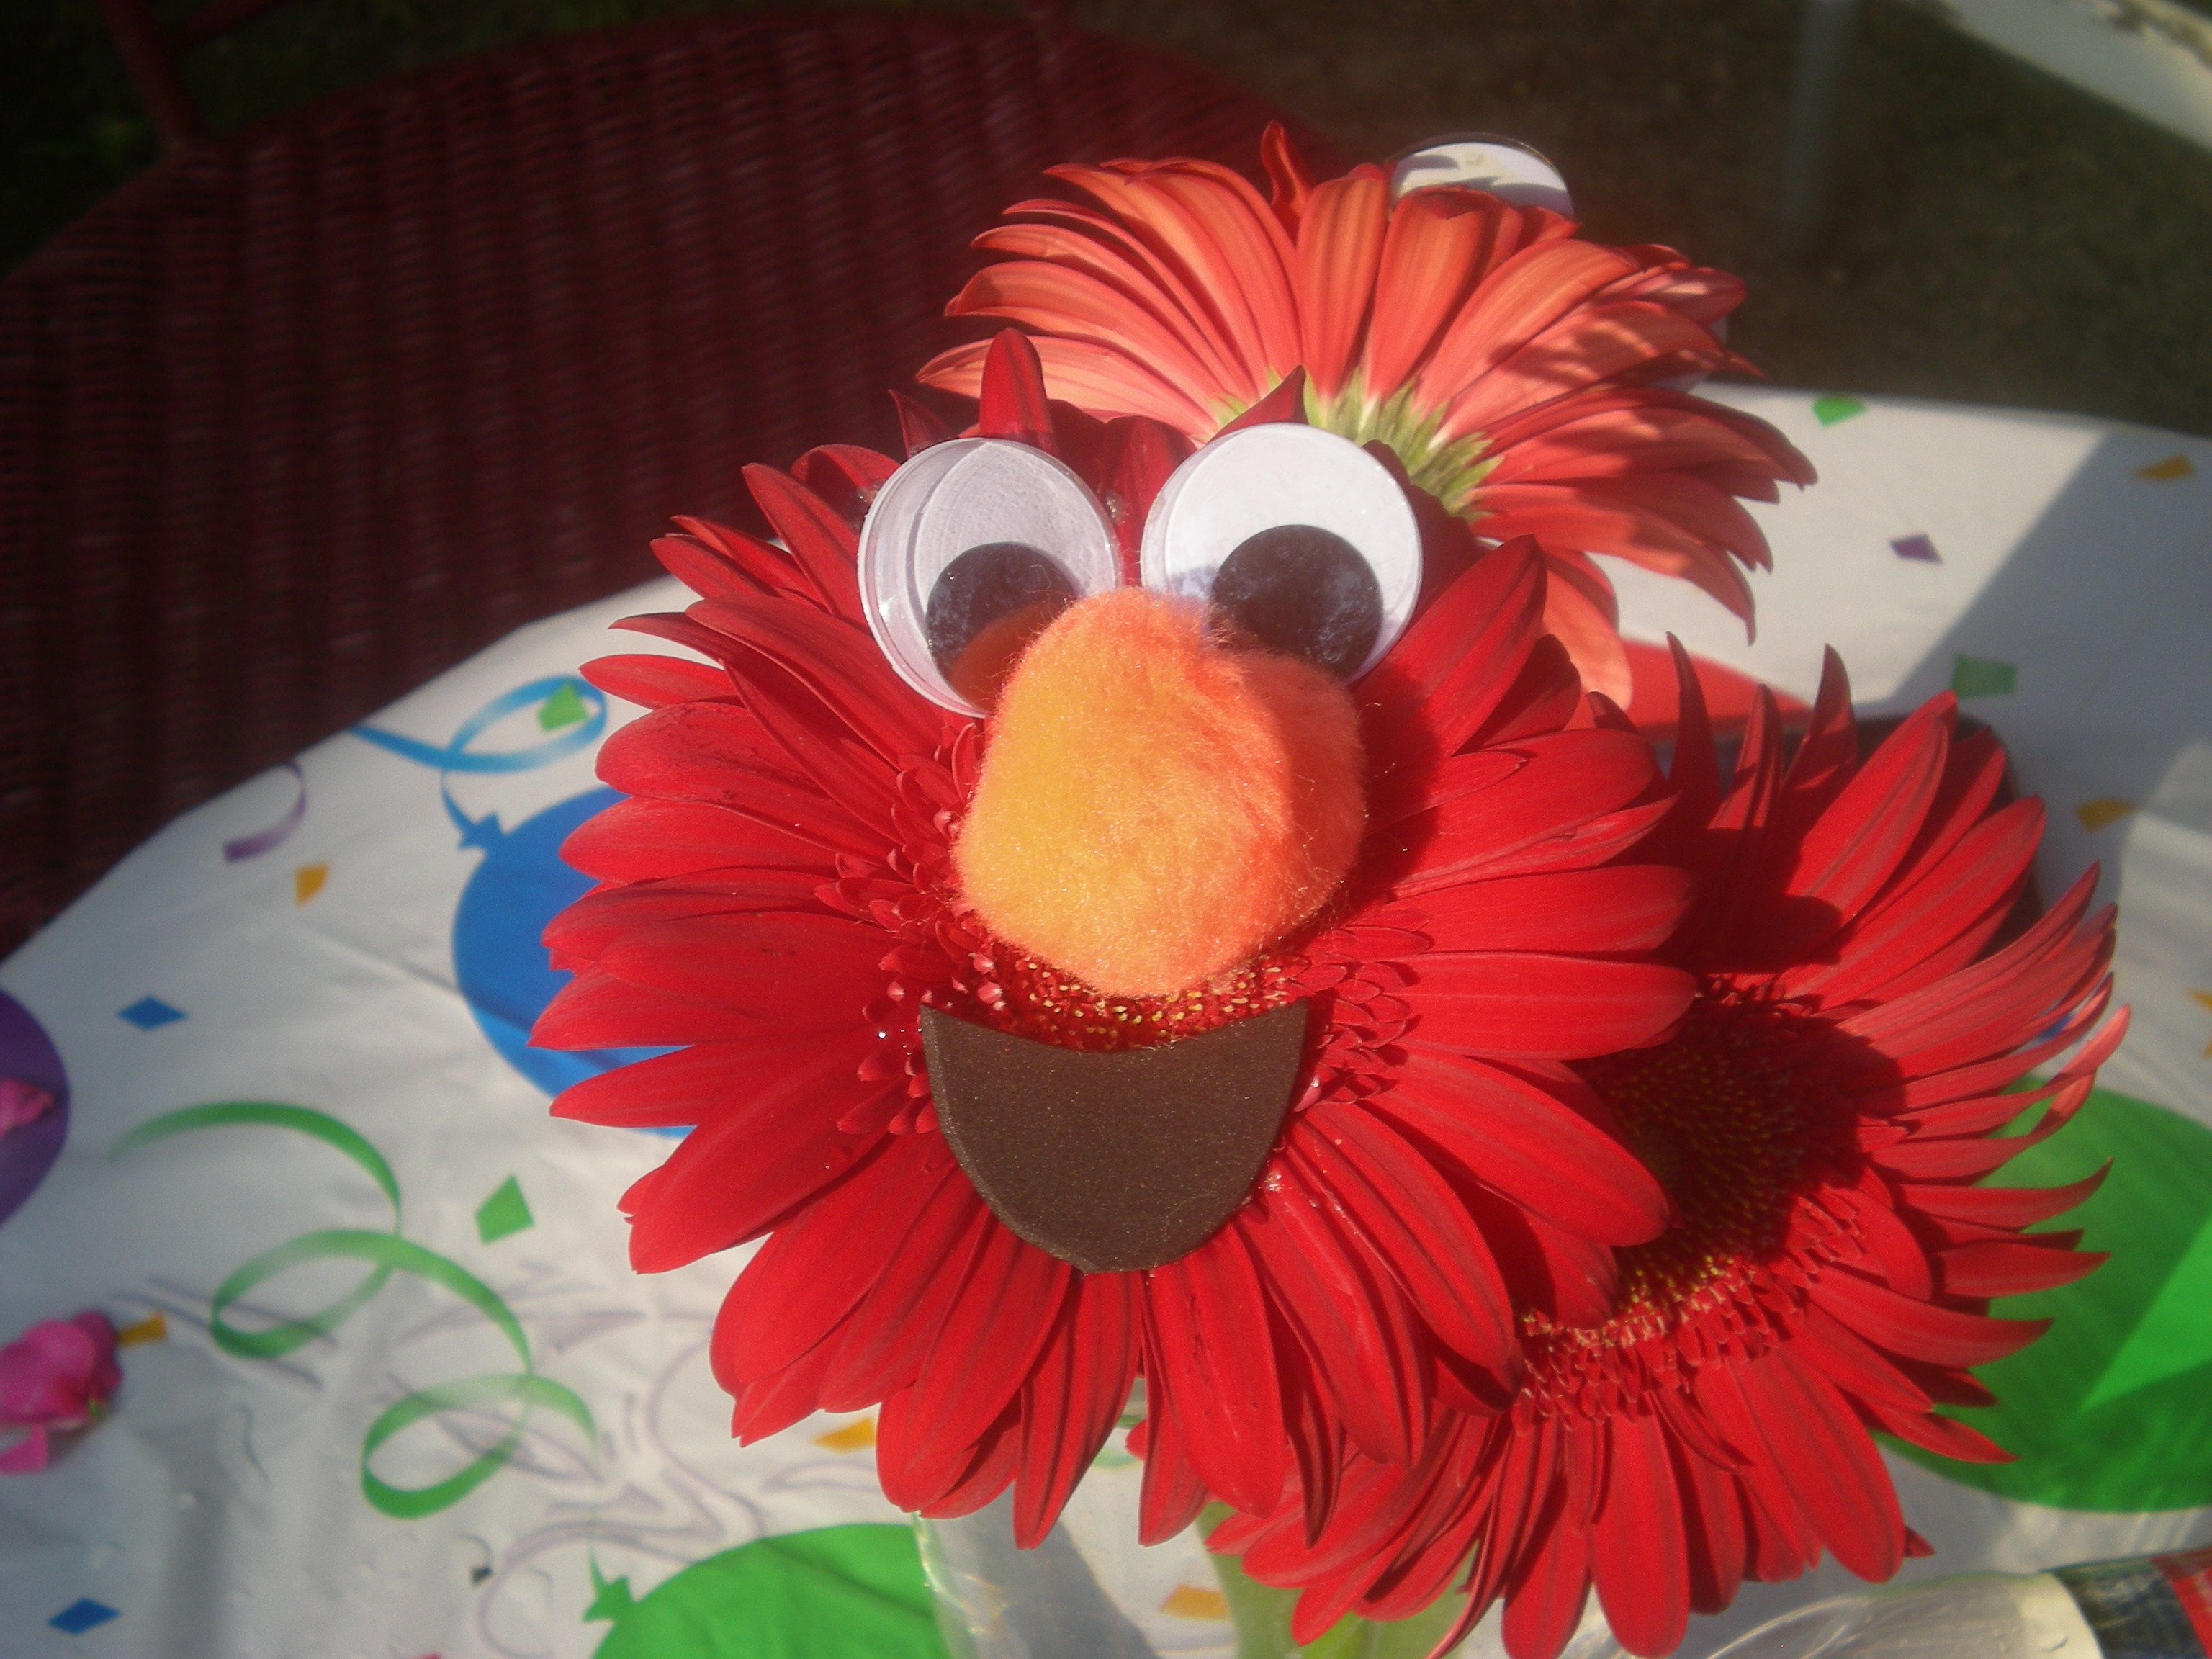 Elmo flower centerpieces for kids birthday partiesd gerber elmo flower centerpieces for kids birthday partiesd gerber daisies flower glue dhlflorist Image collections